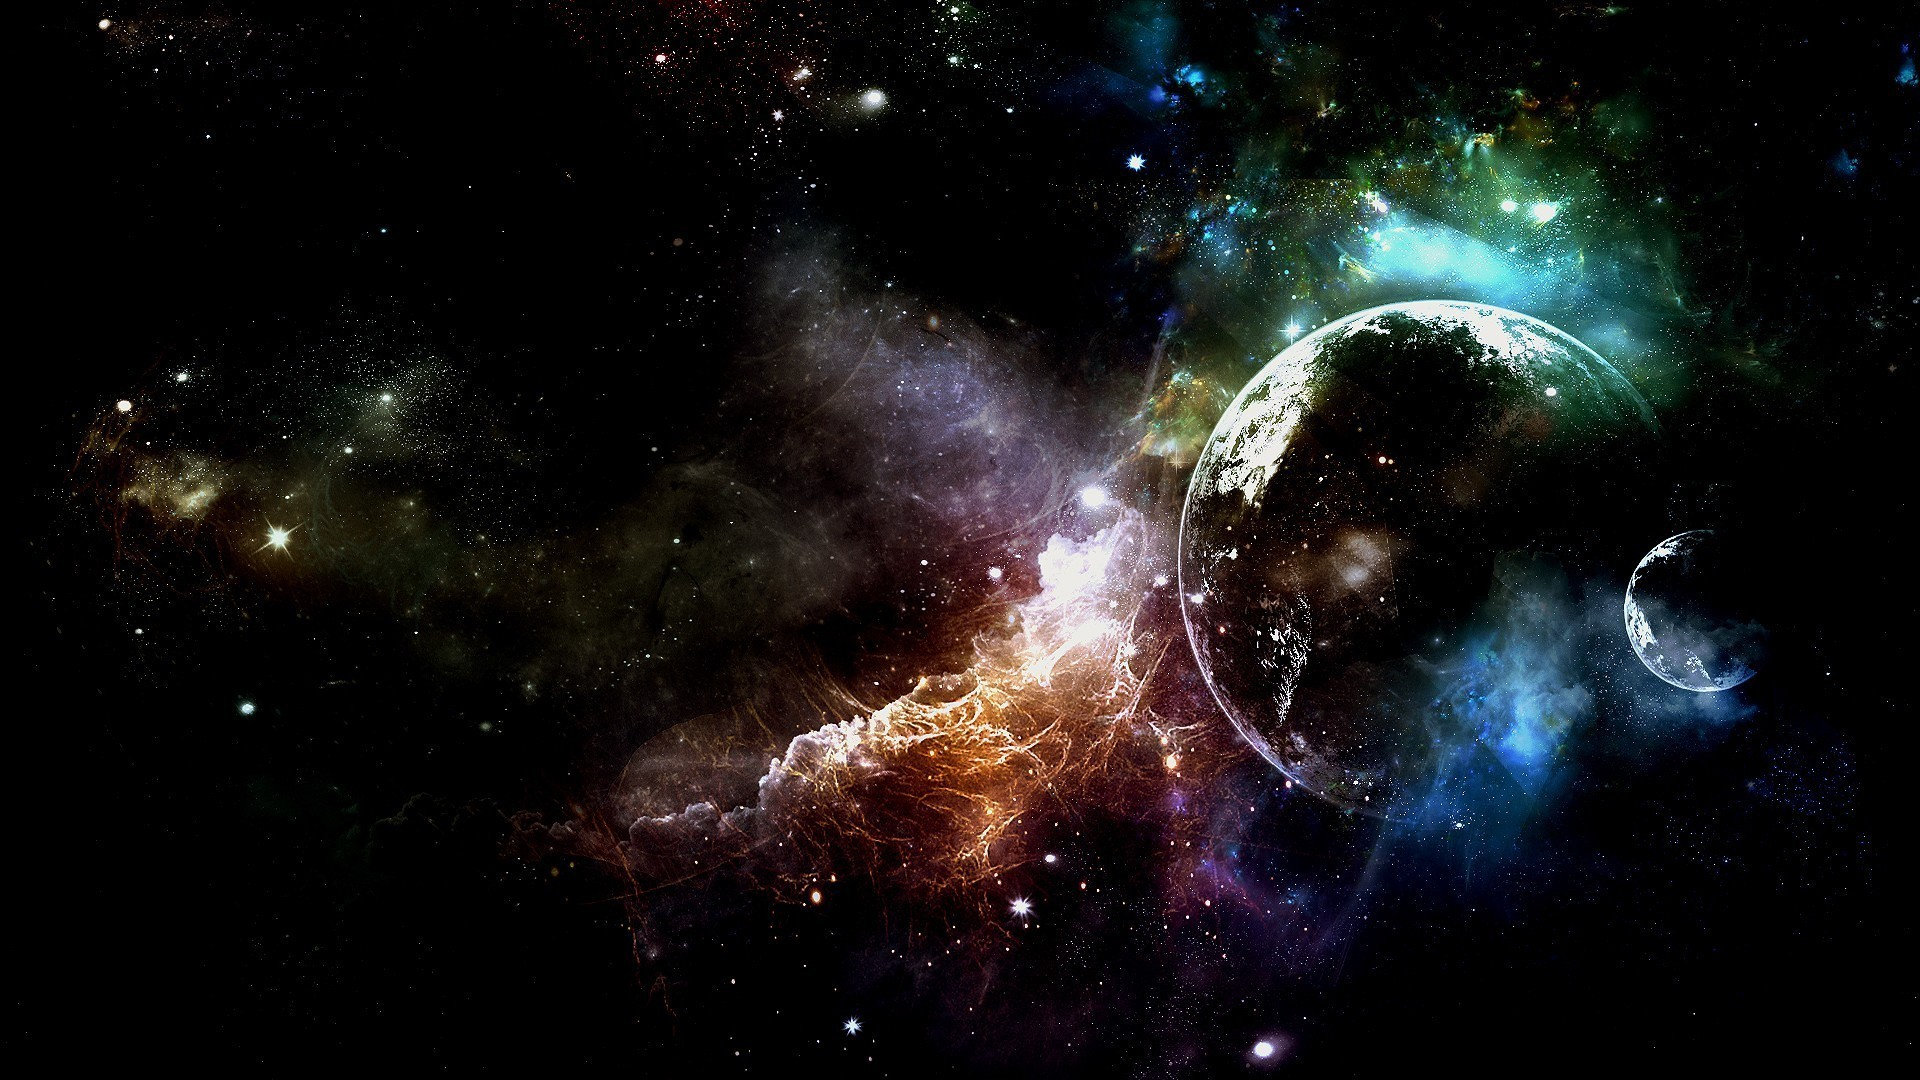 1920x1080 ... Widescreen Wallpapers of Space | Beautiful Pictures ...